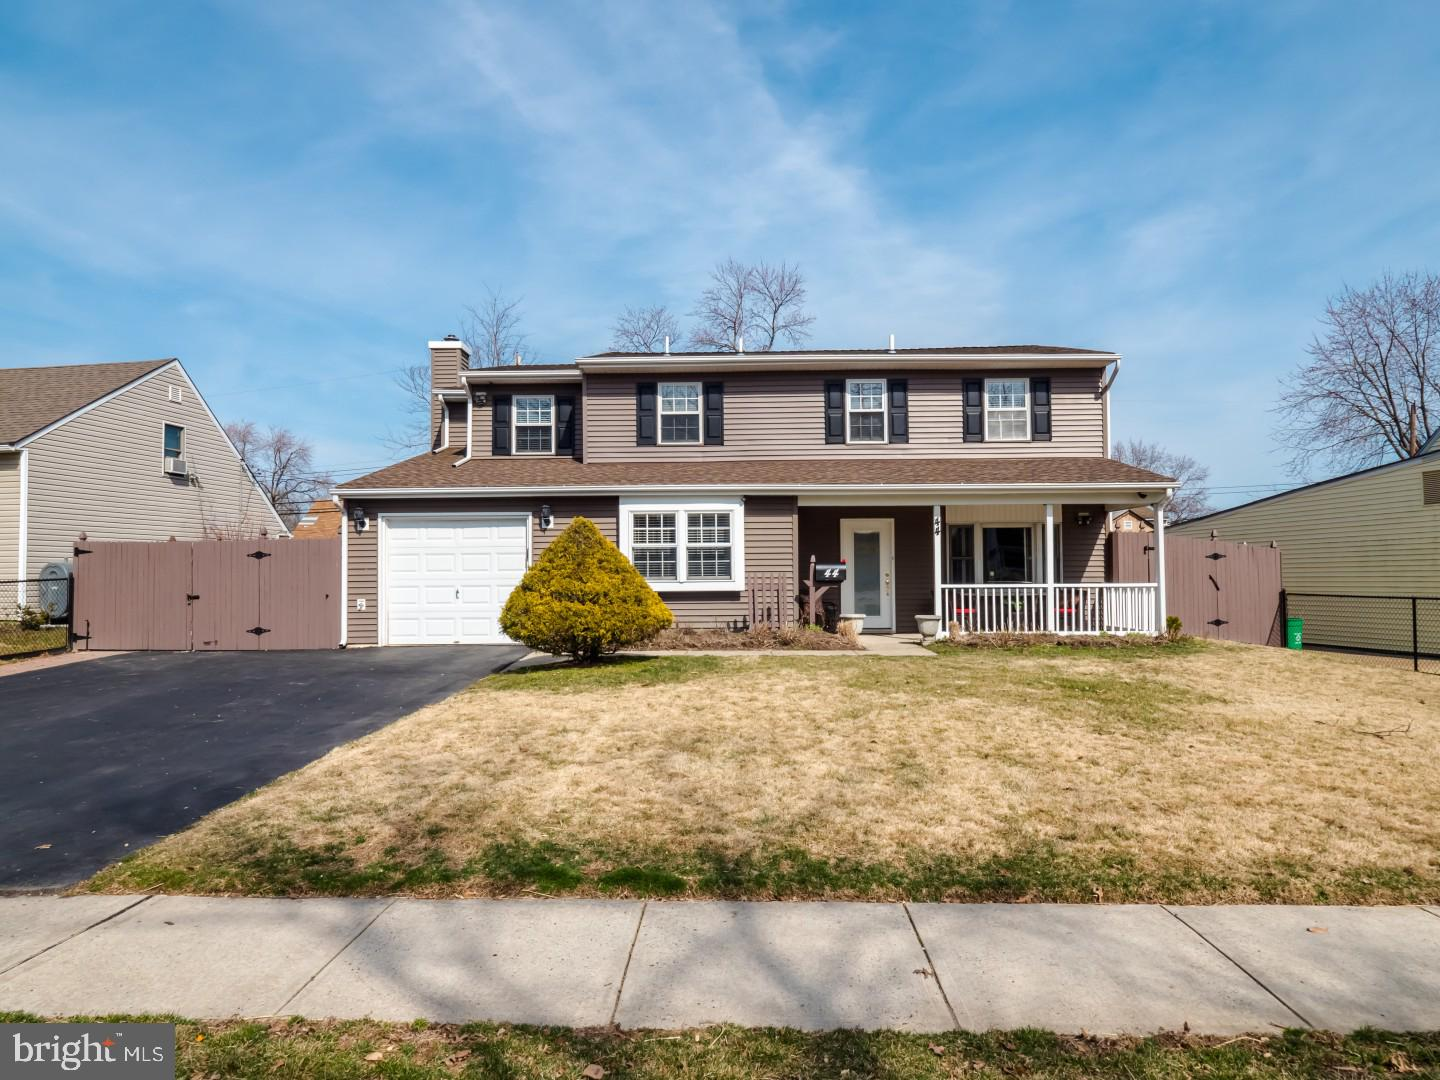 44 RAMBLER LANE, LEVITTOWN, PA 19055